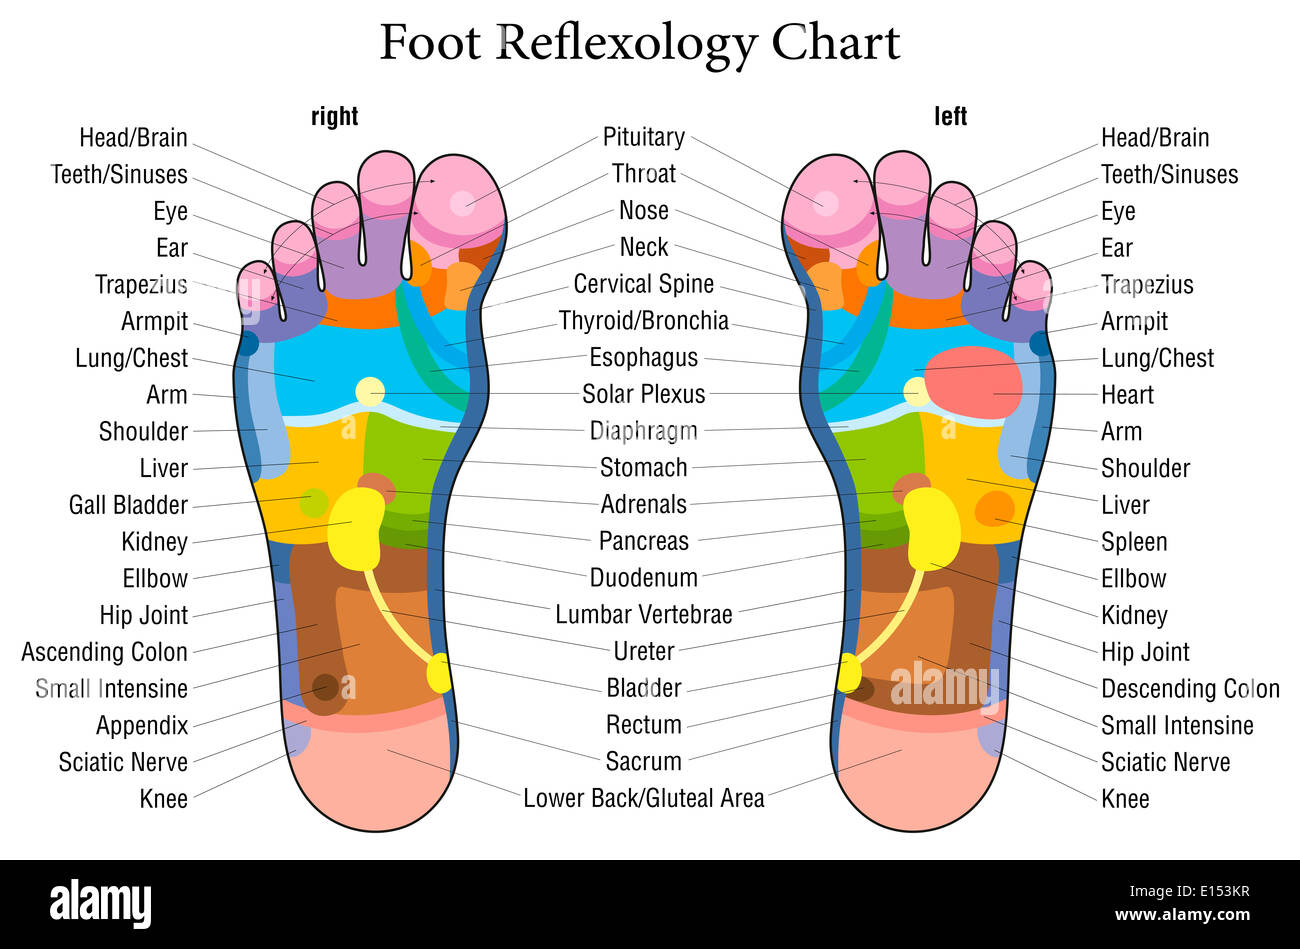 Foot reflexology chart with accurate description of the foot reflexology chart with accurate description of the corresponding internal organs and body parts ccuart Image collections